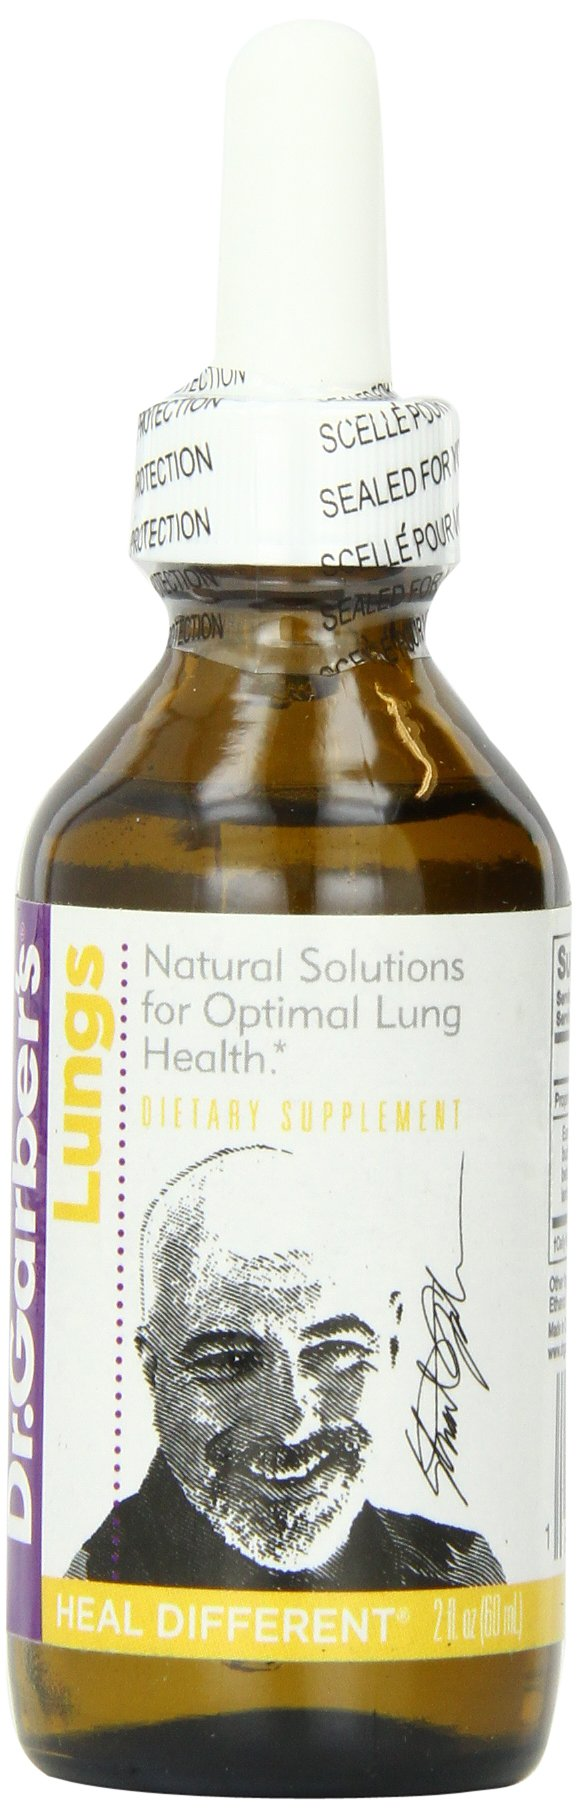 Dr. Garber's Natural Solutions Lungs